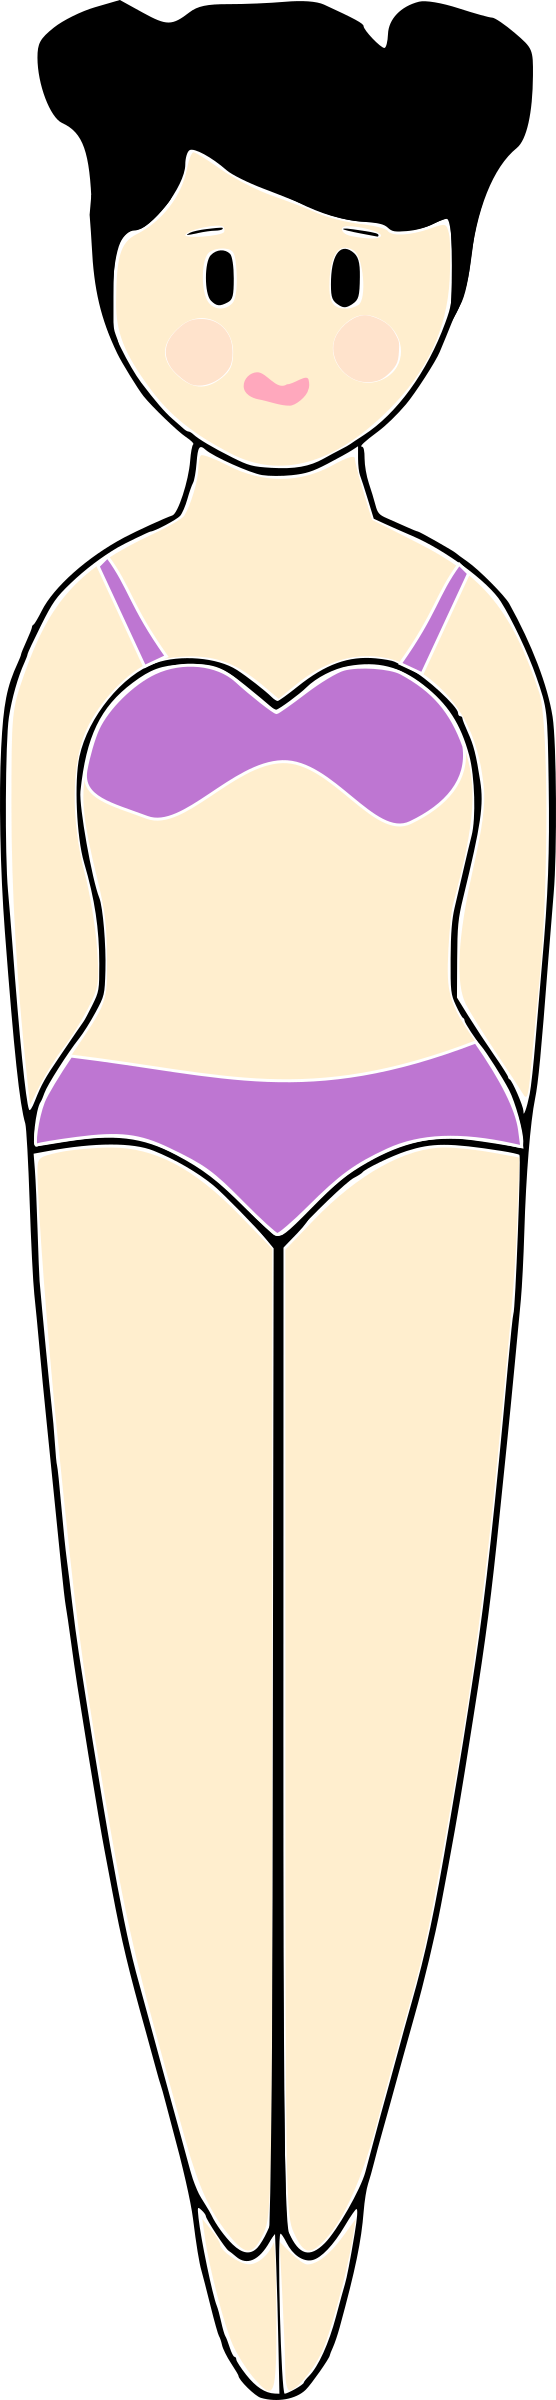 Swimsuit clipart bathing suit. Girl in a big